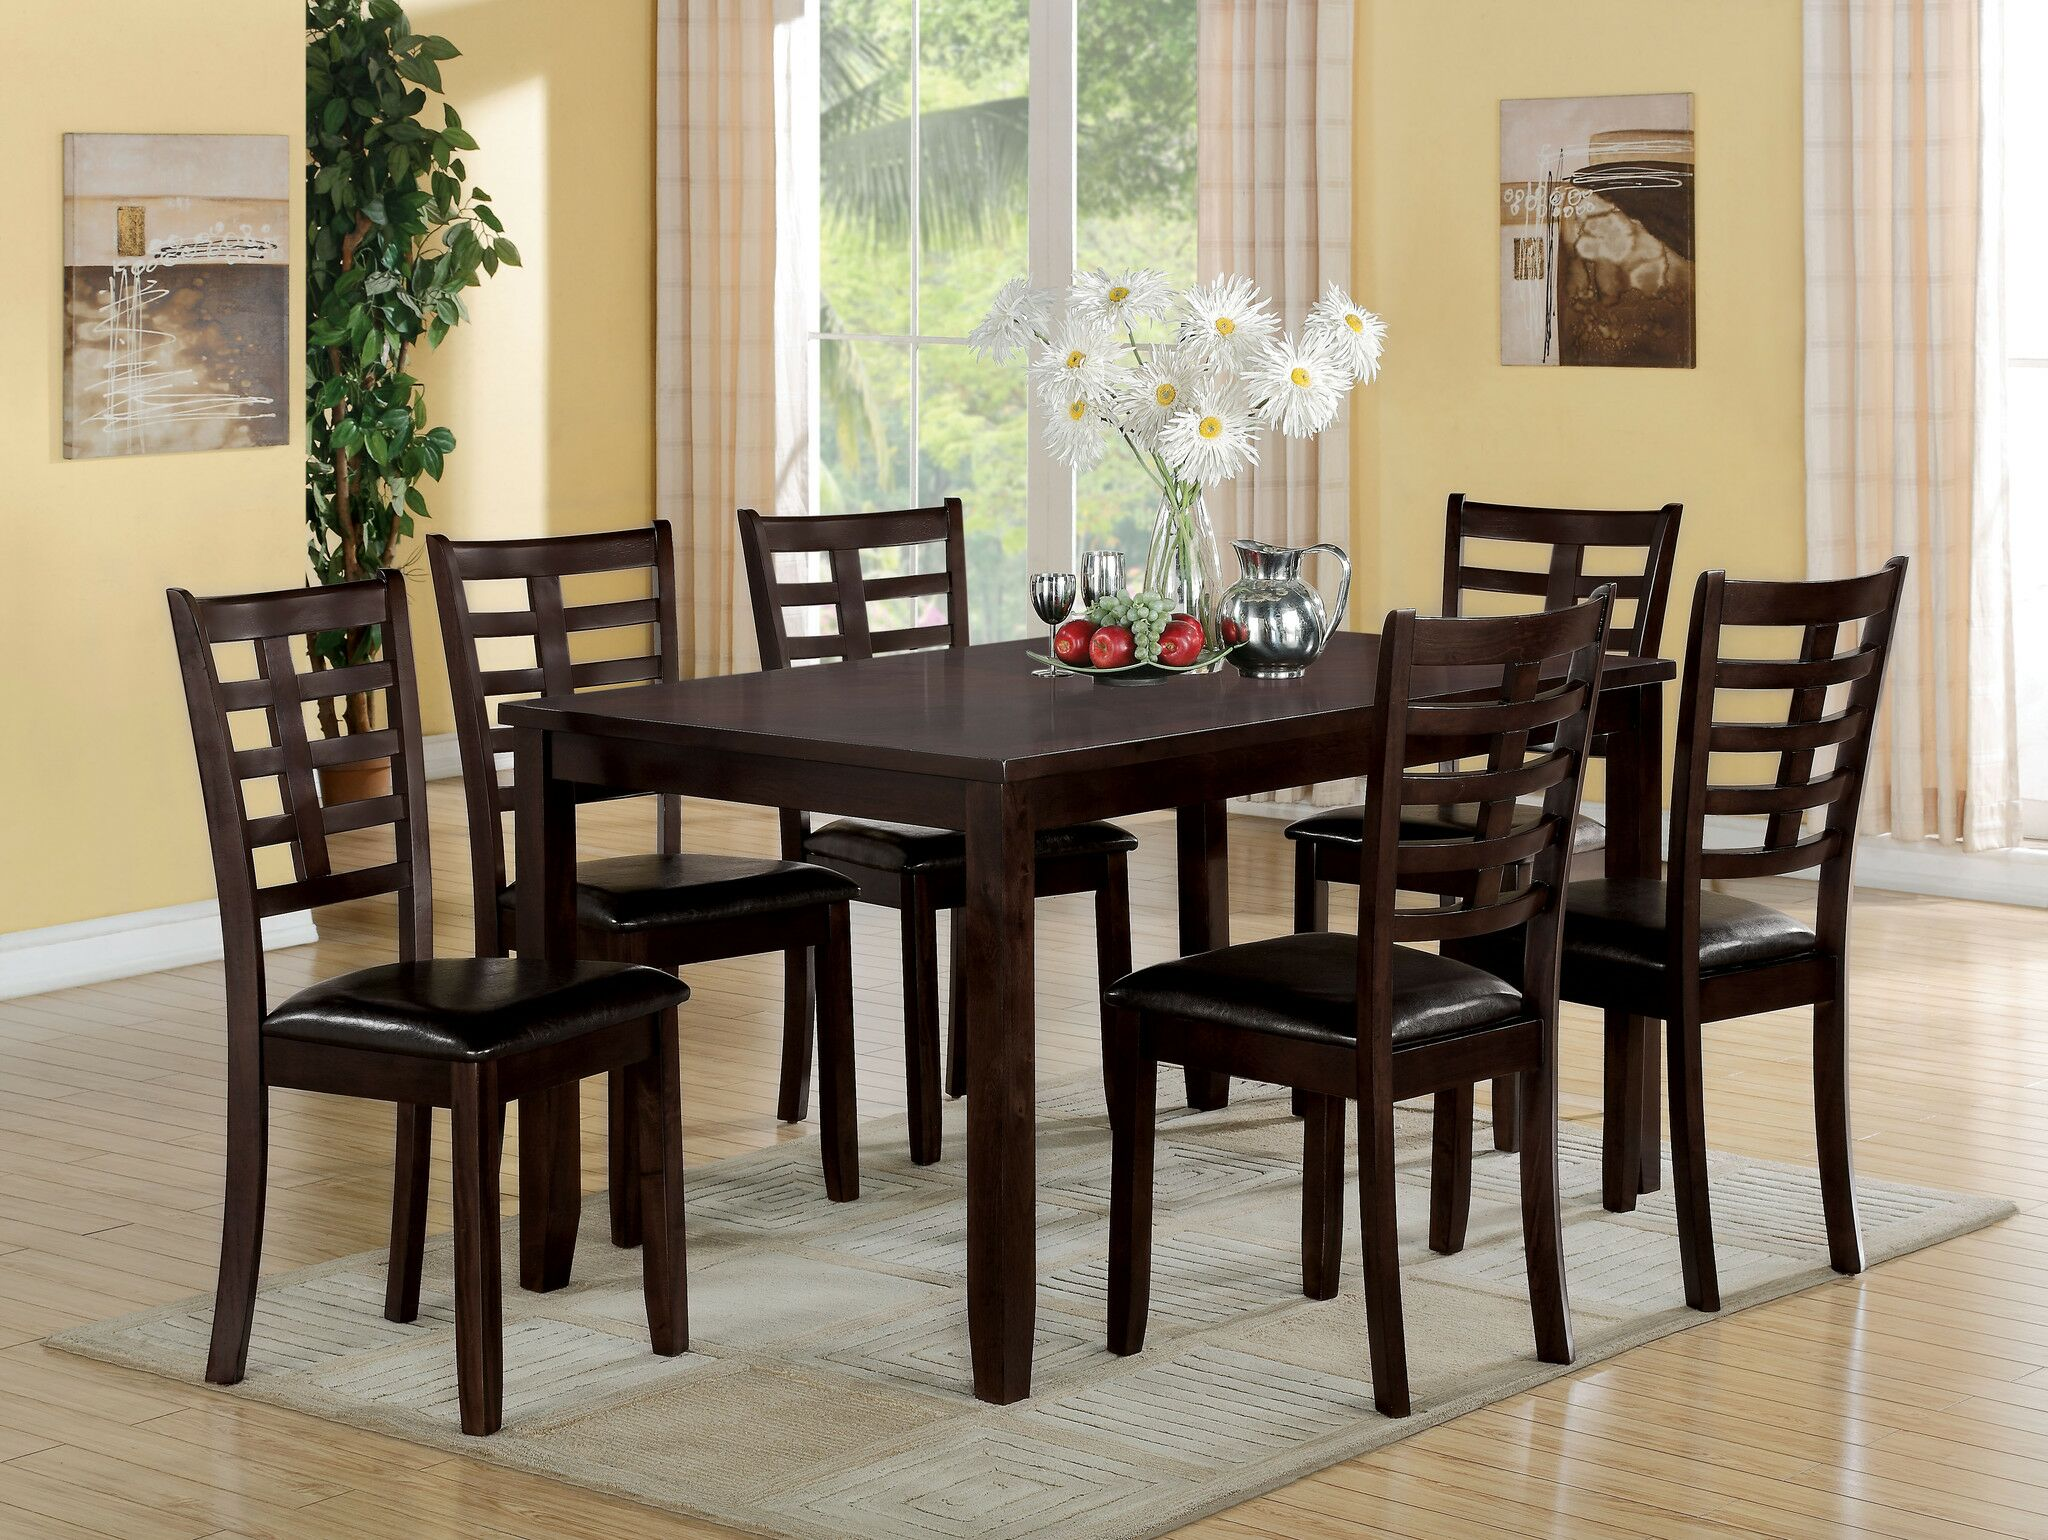 Dining Table Sets Seria 7 Piece Dining Set April 2019